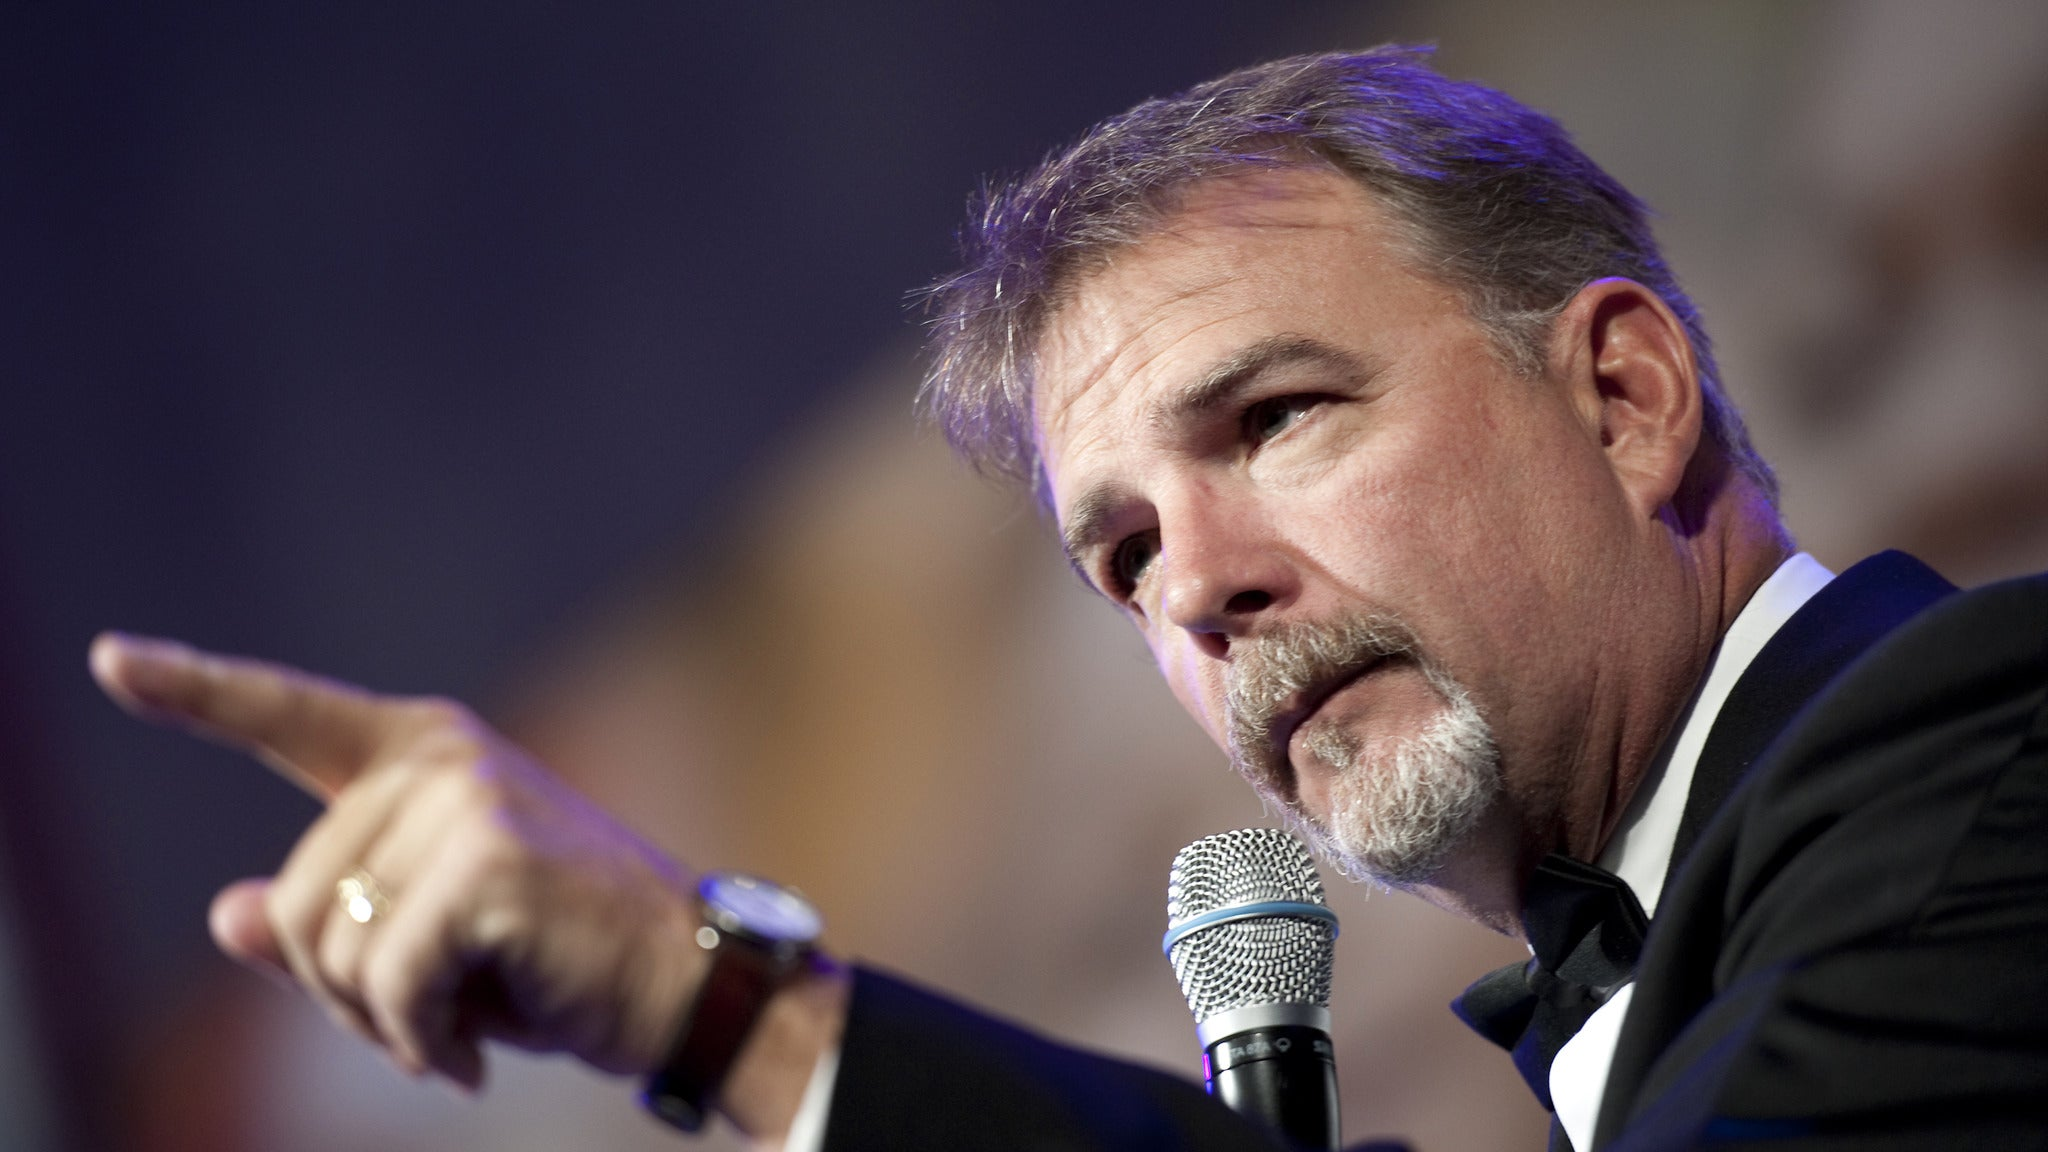 Bill Engvall at Stephens Auditorium